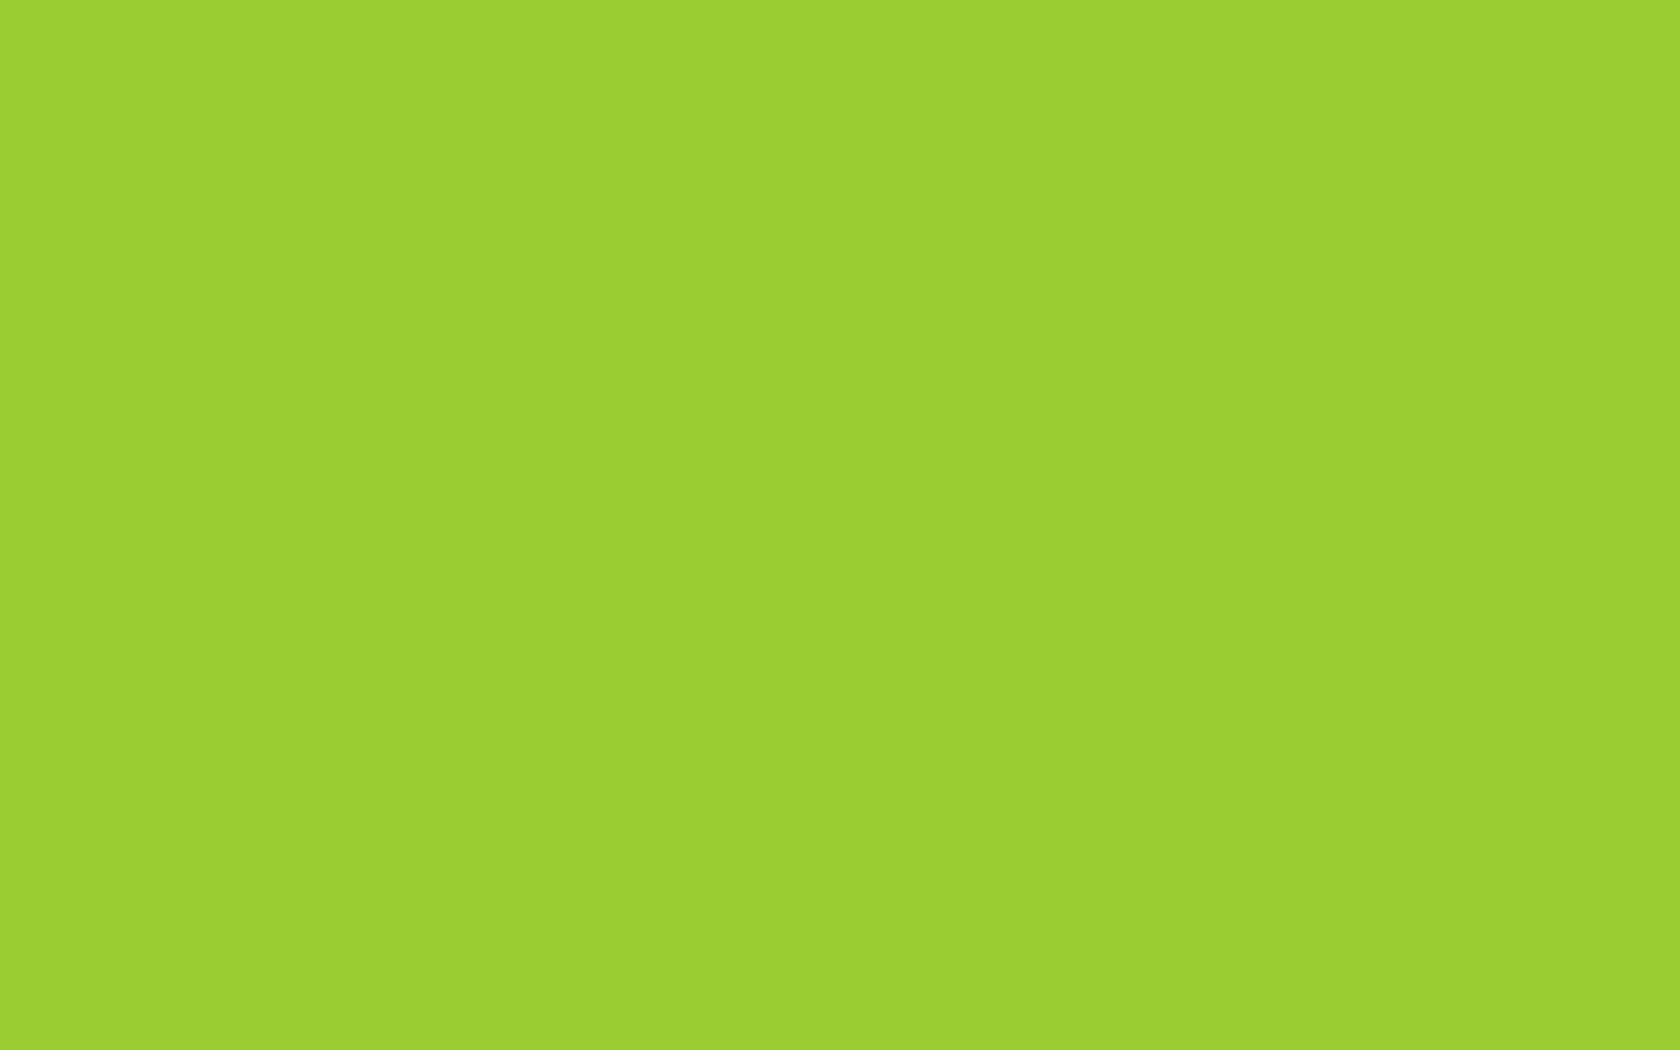 1680x1050 Yellow-green Solid Color Background